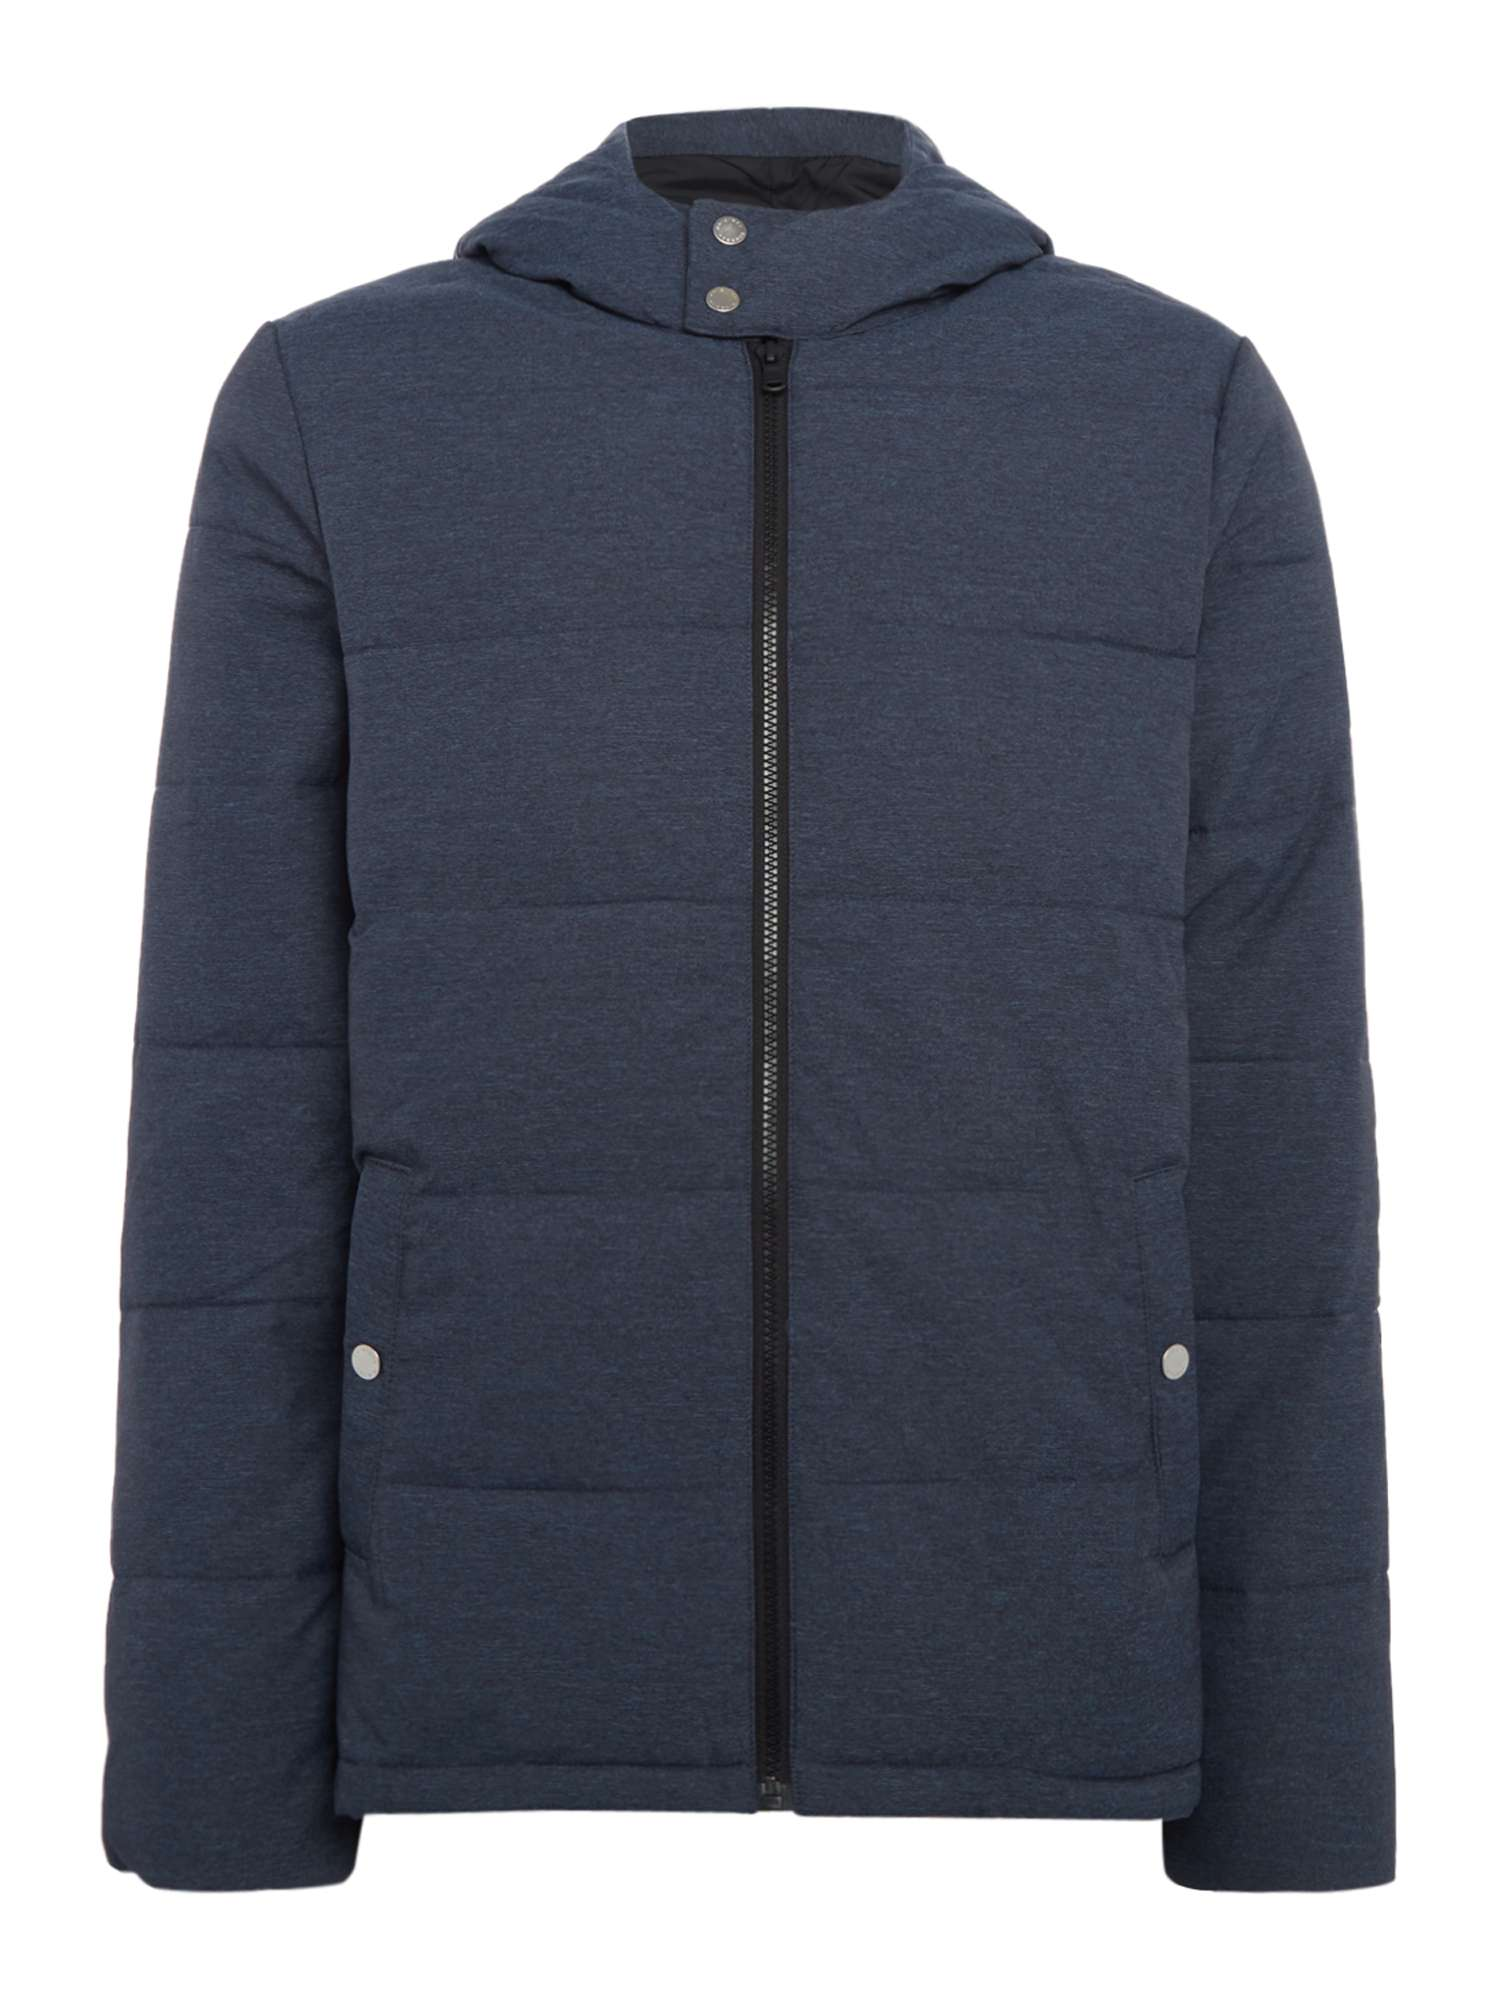 Original Penguin Men's Hooded Quilted Jacket at House of Fraser : penguin quilted jacket - Adamdwight.com